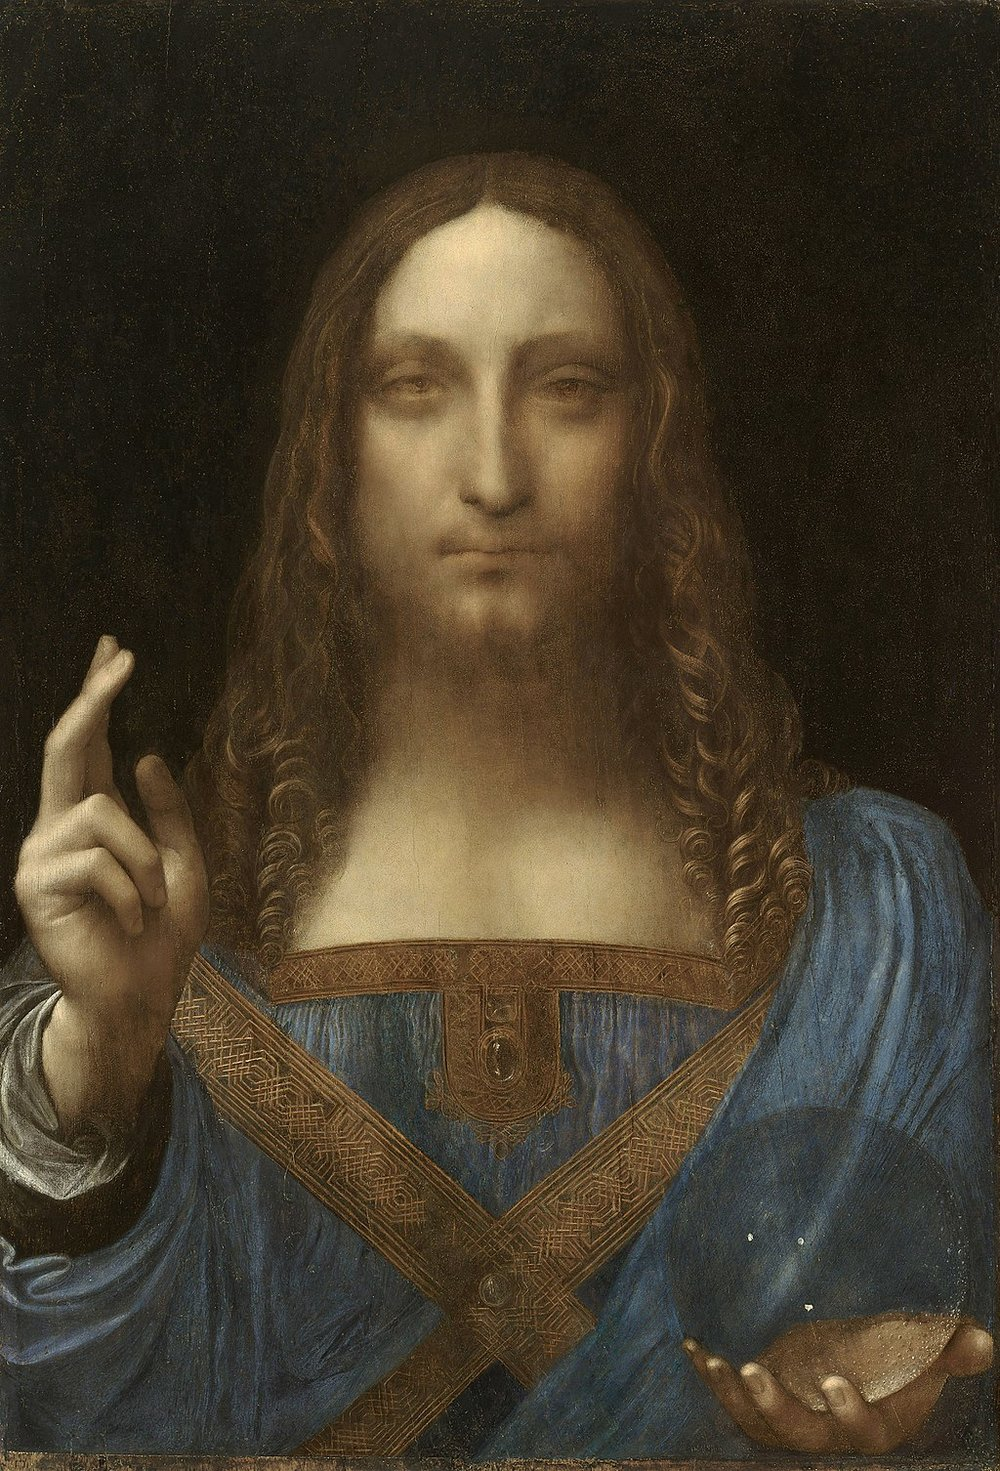 Leonardo da Vinci. Painting by Salvator Mundi, c. 150..